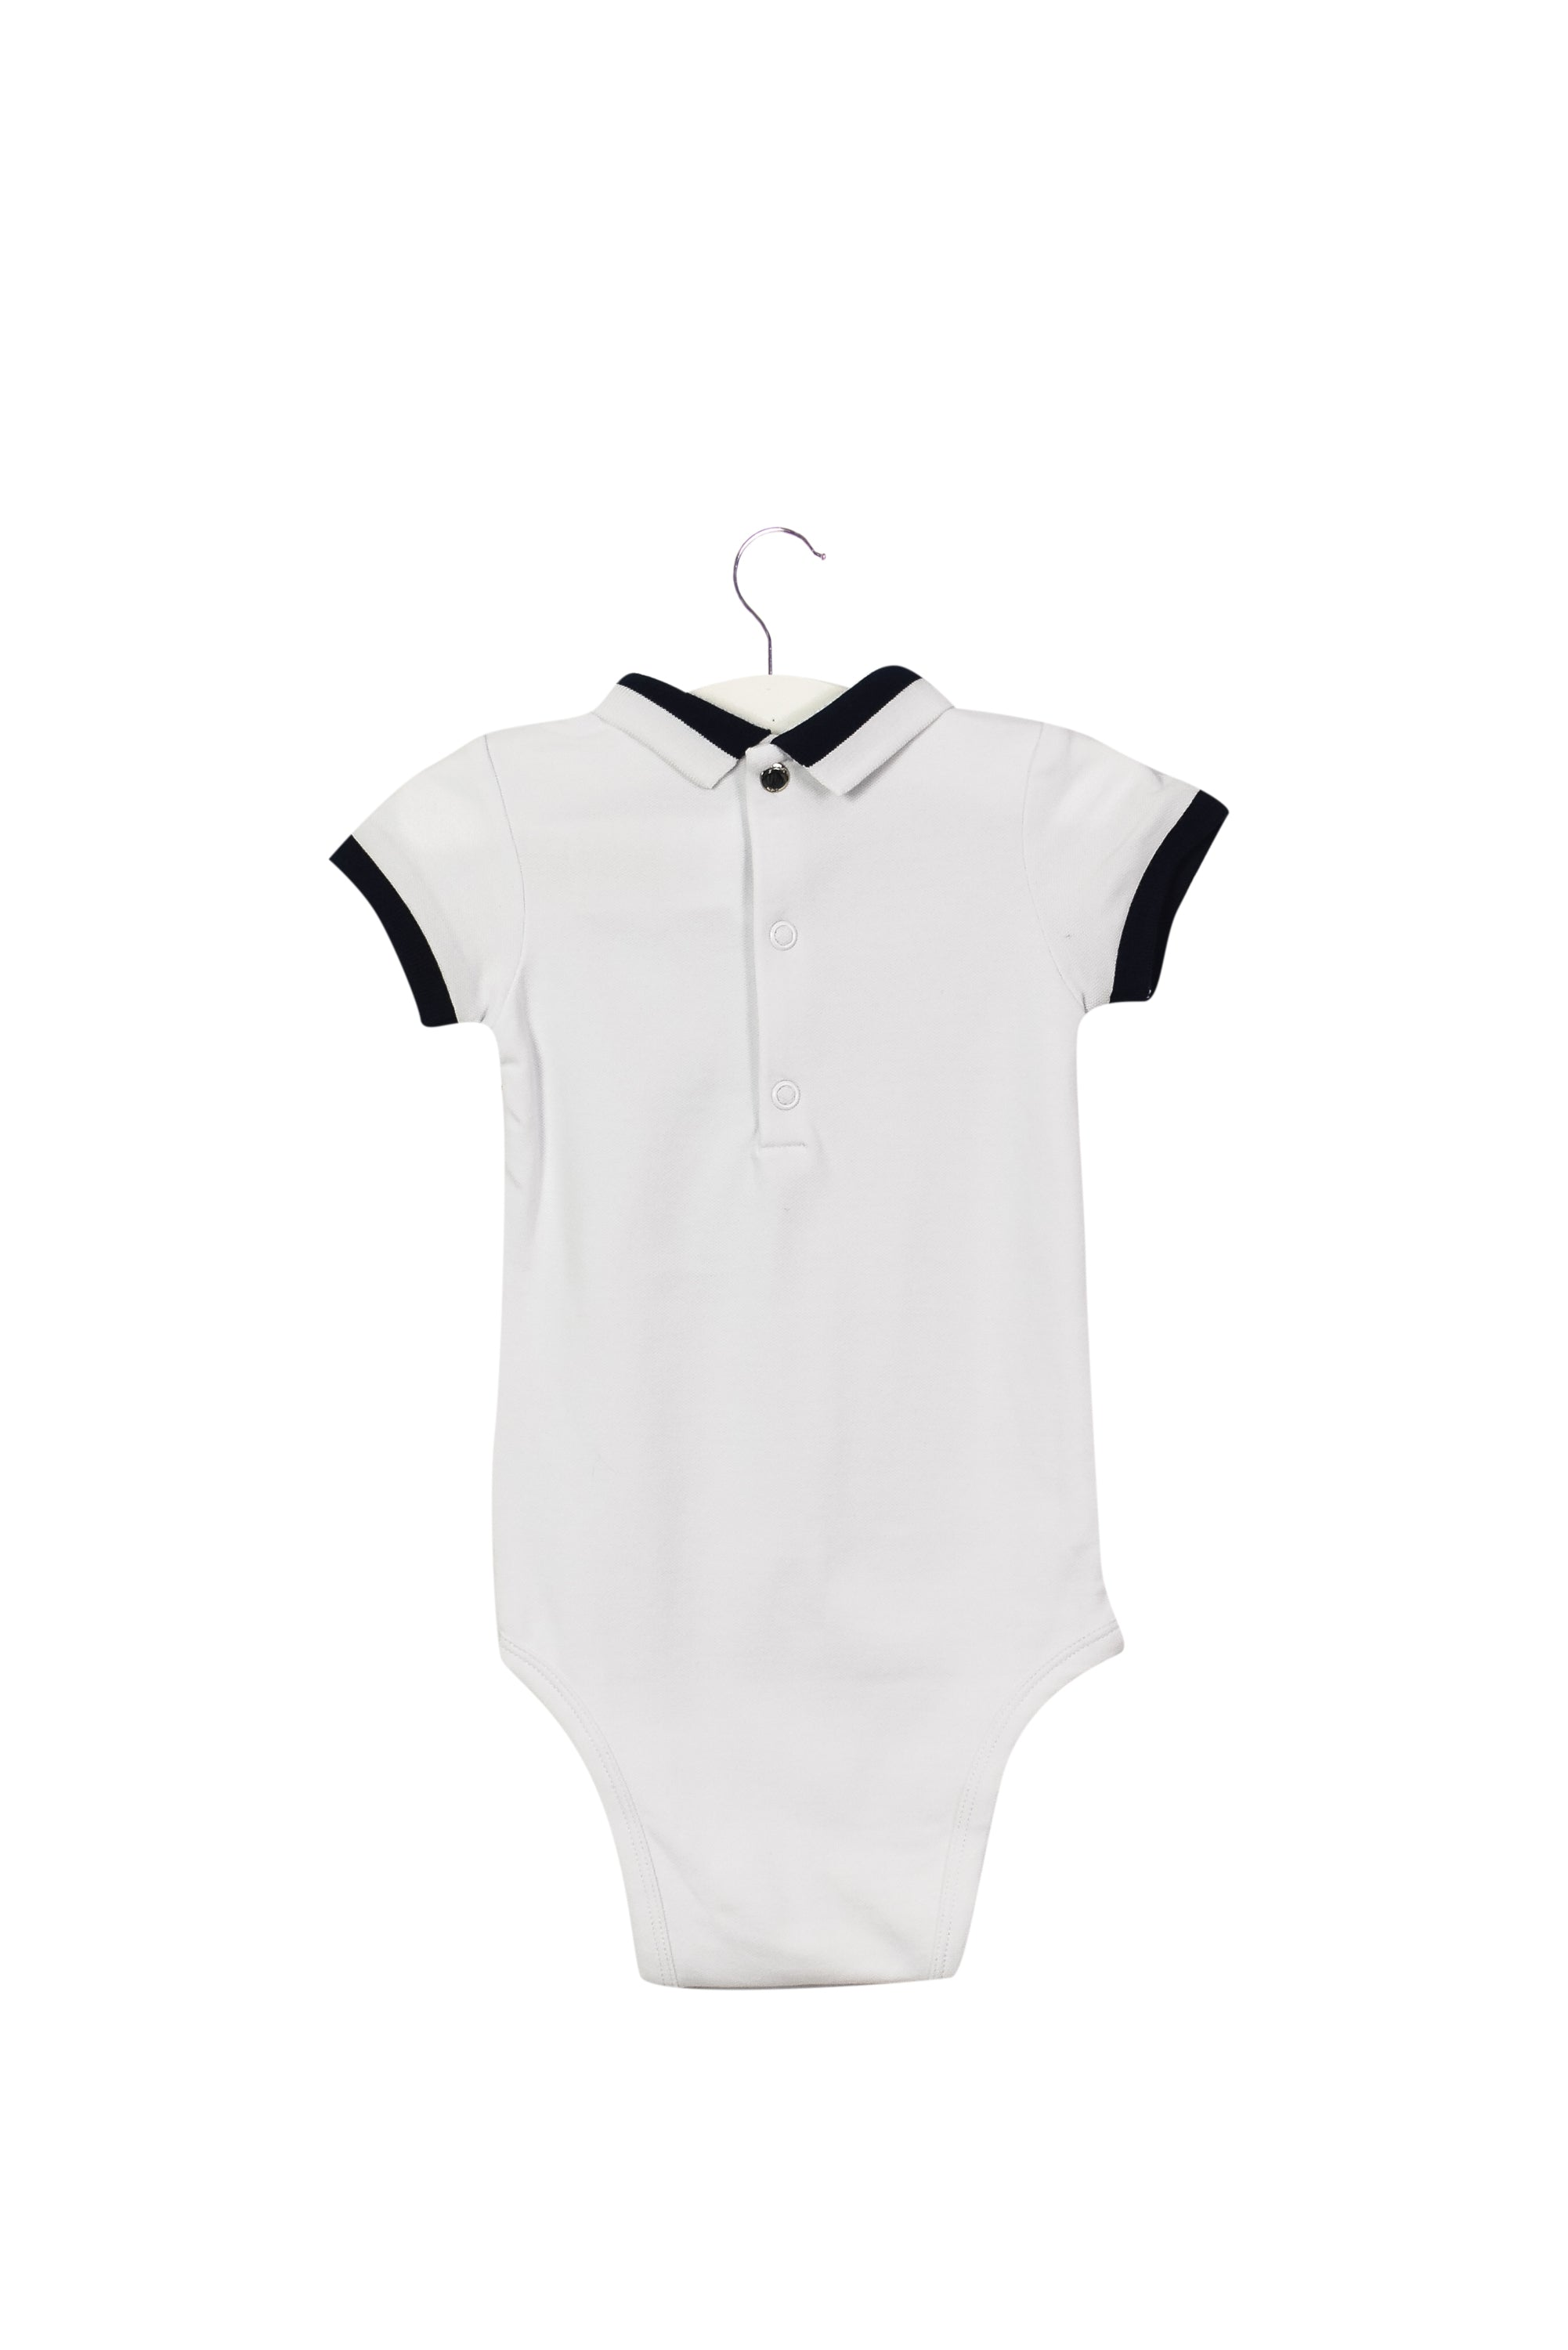 10035070 Jacadi Baby~Bodysuit 12M at Retykle